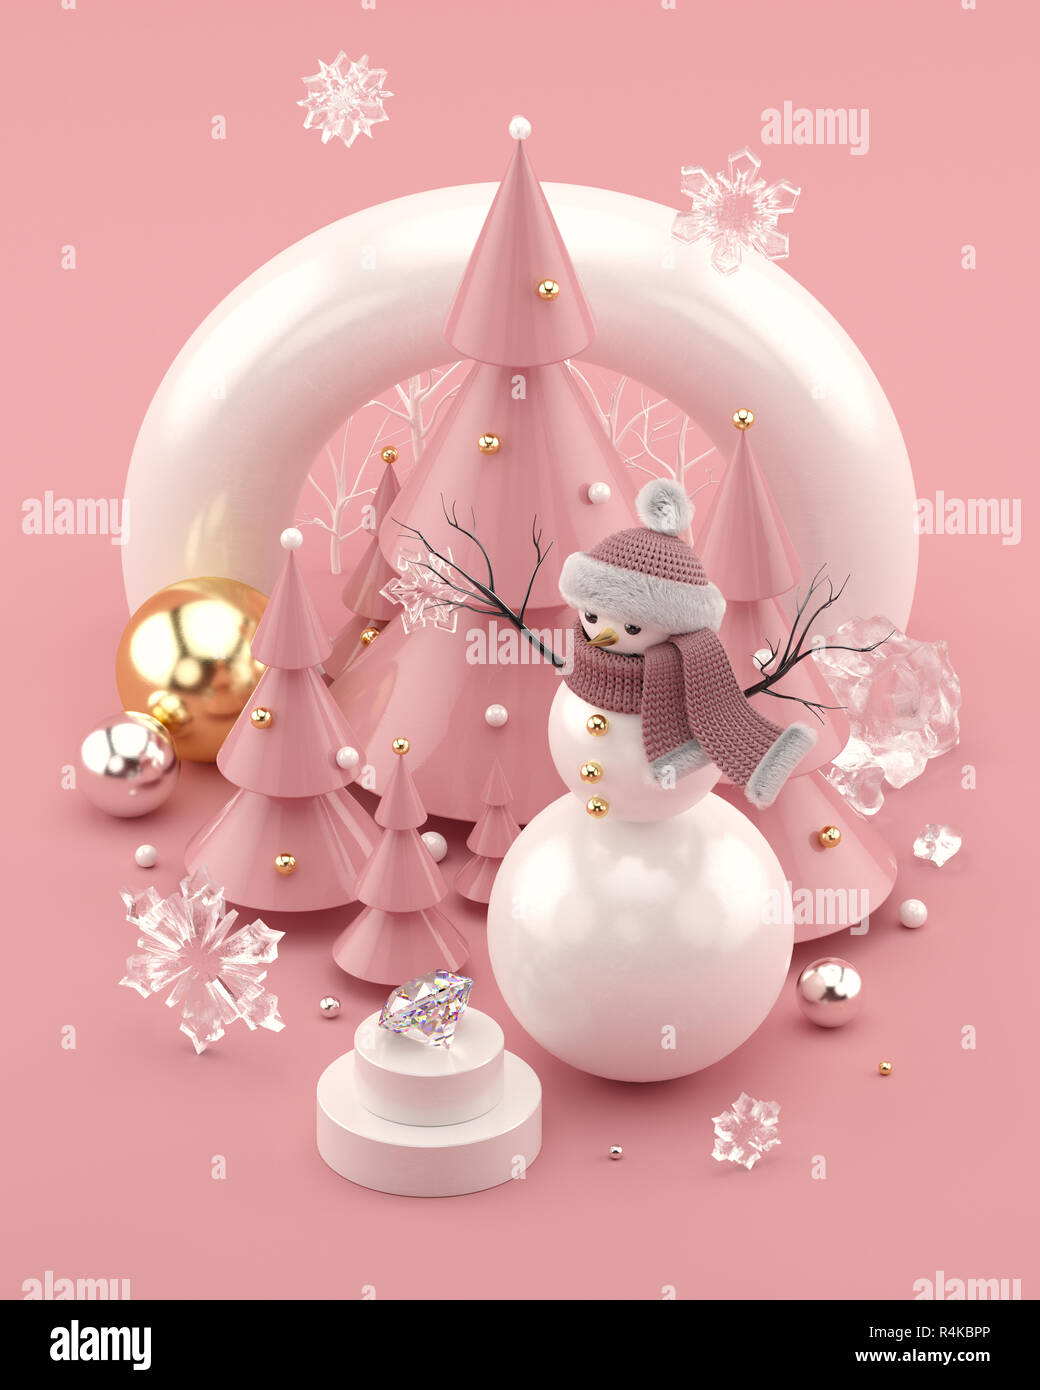 Rose Gold 3D illustration with snowman and decorated Christmas trees. - Stock Image